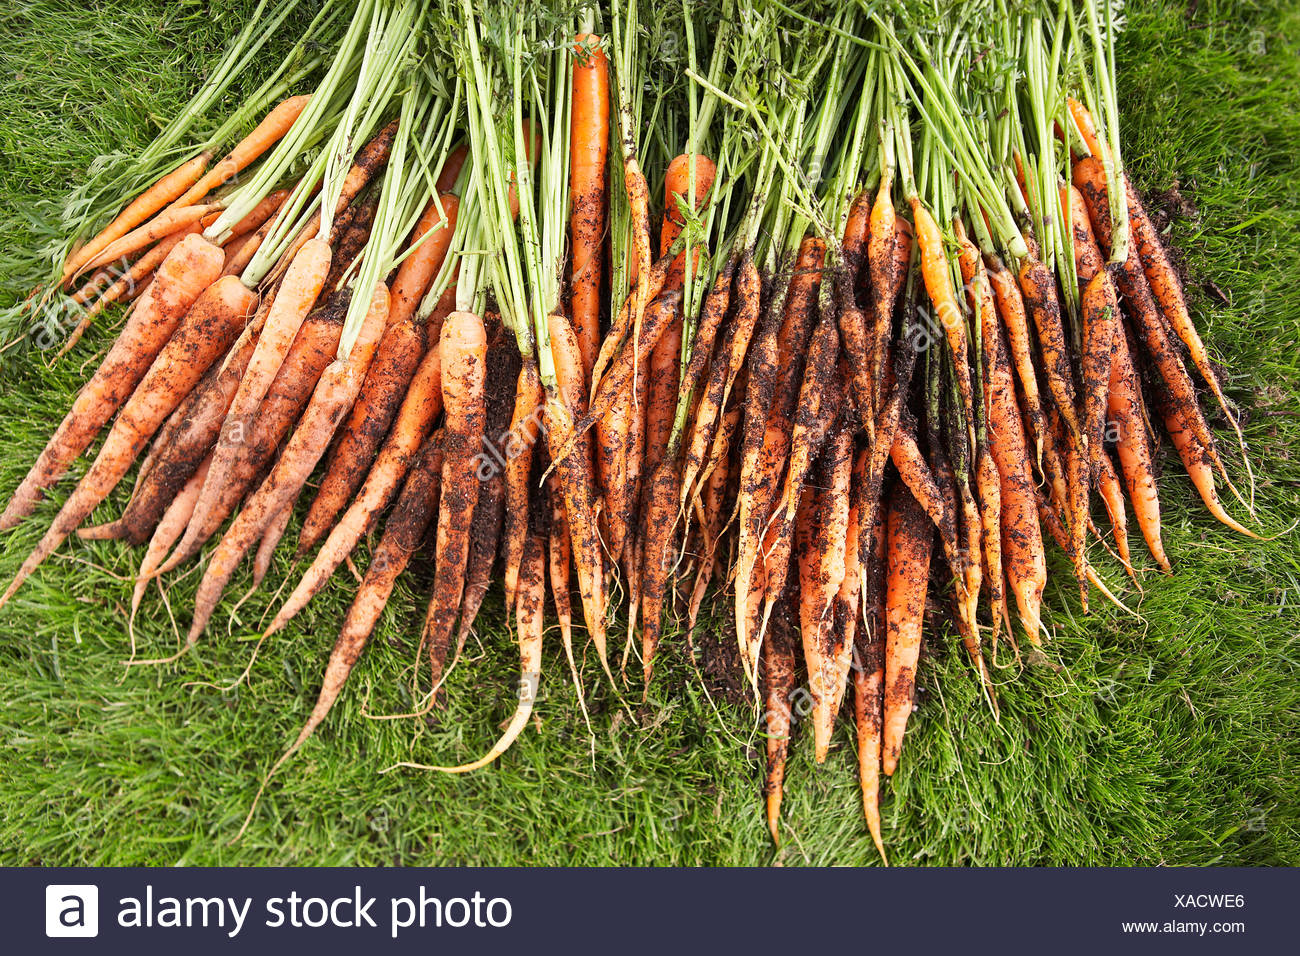 Freshly picked carrots on lawn - Stock Image